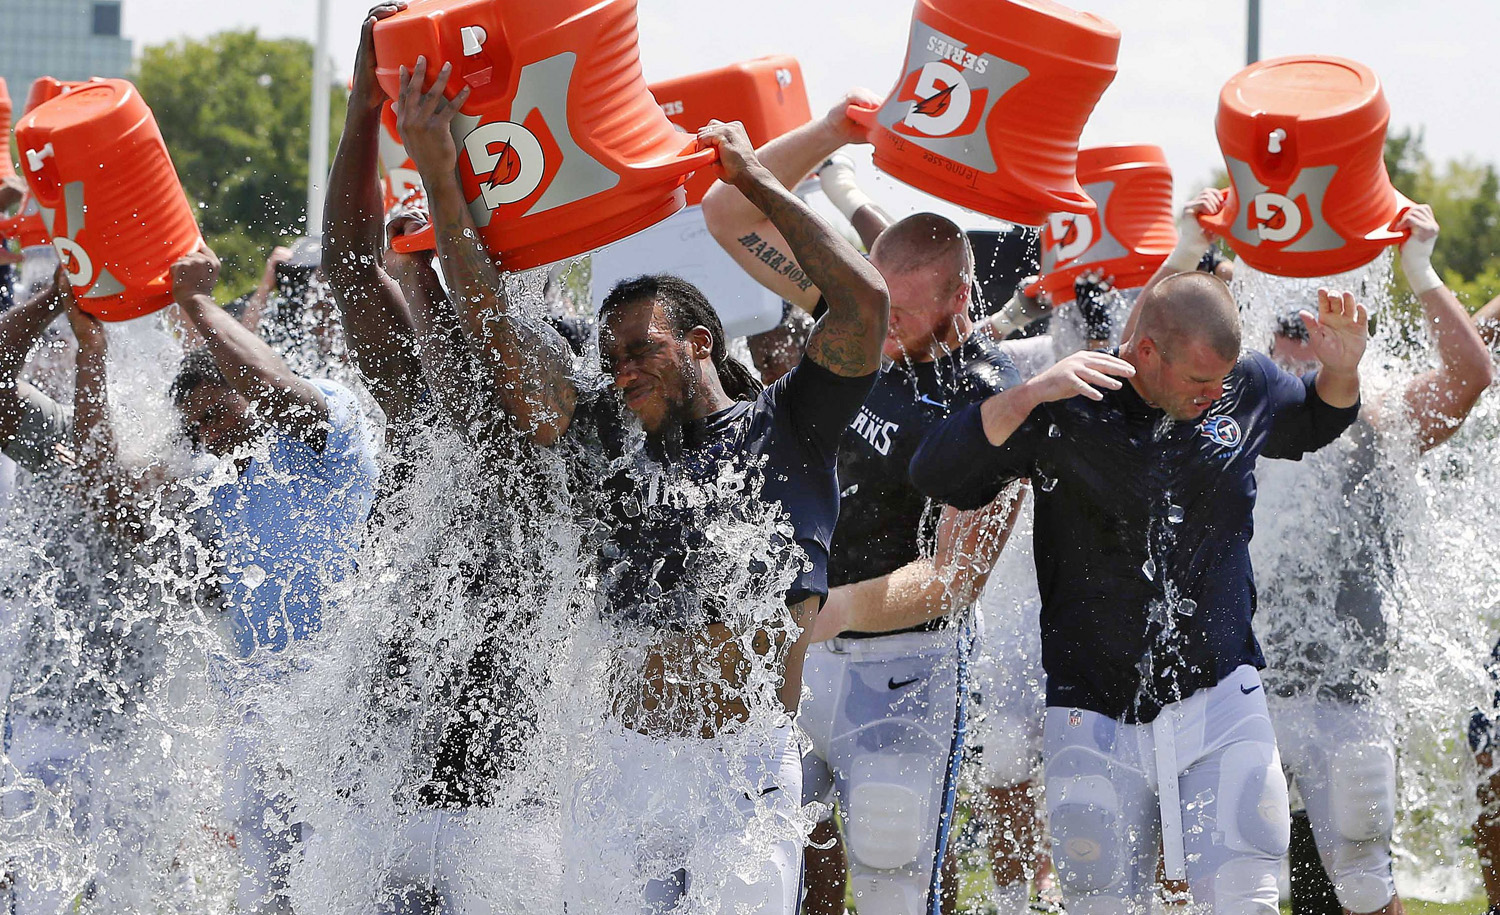 Tennessee Titans players taking part in the ALS Ice Bucket Challenge after practice in Nashville, Tenn. August 20, 2014.